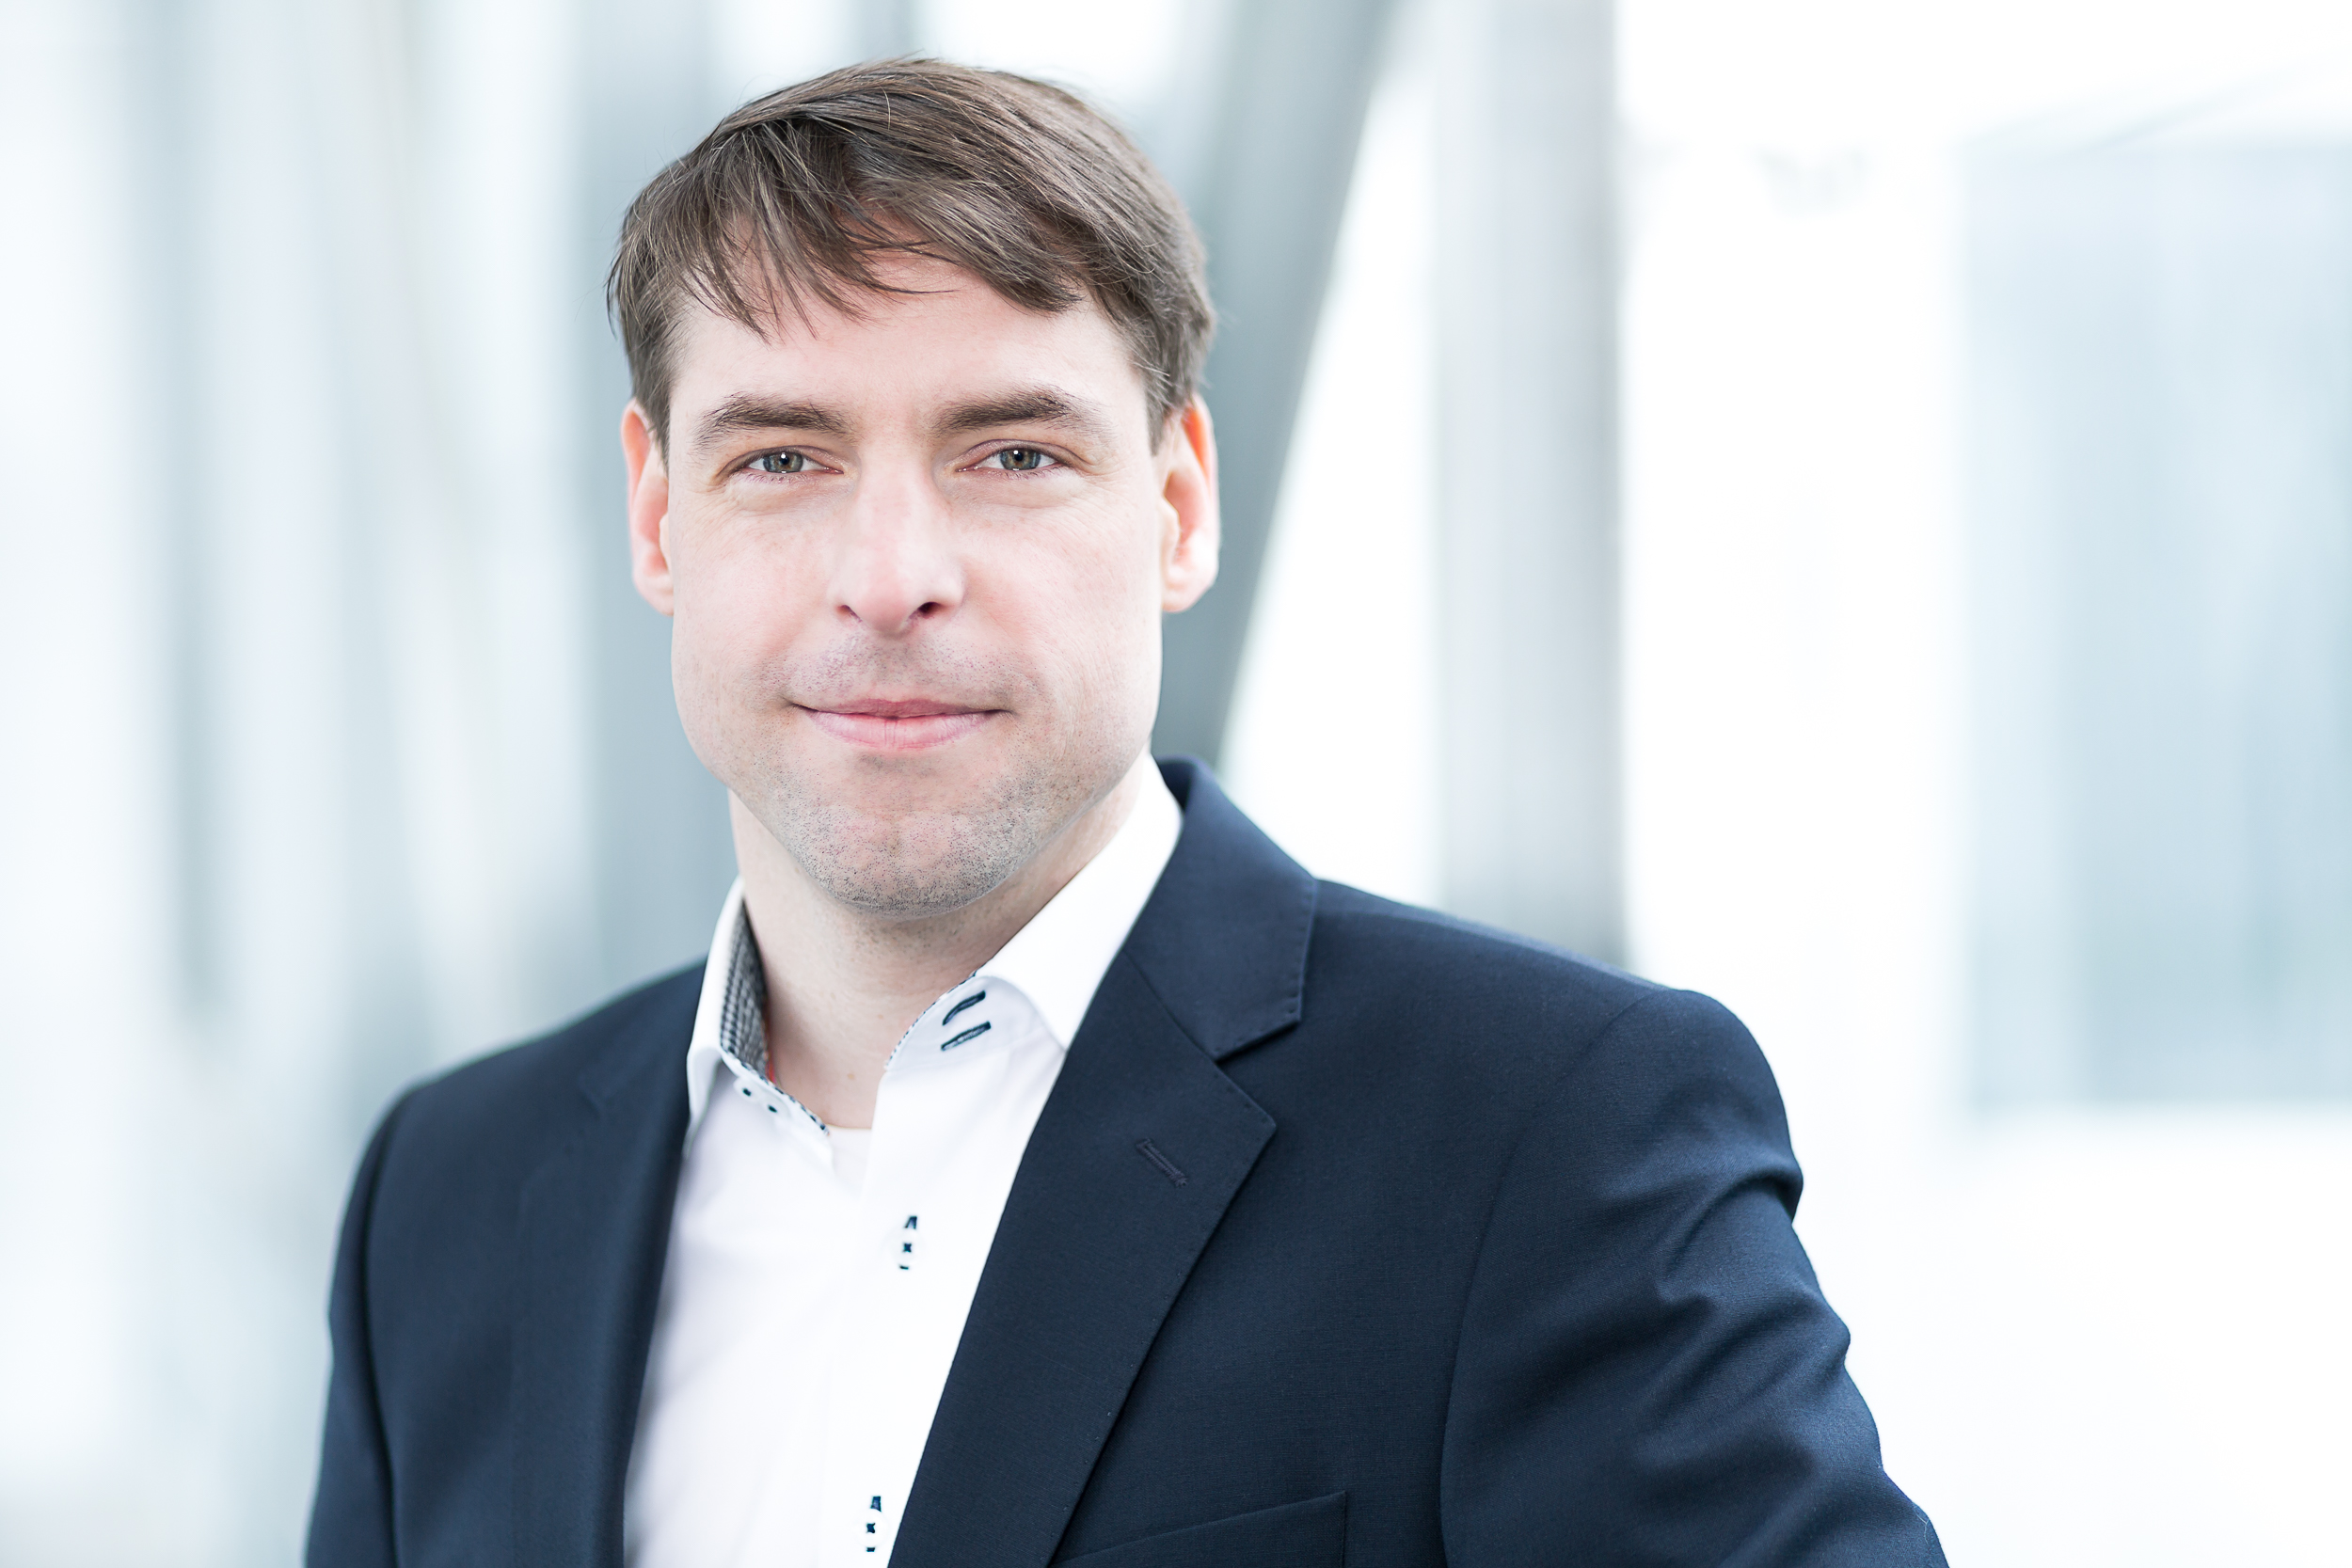 Dr. Thomas Holm ist Head of Innovation & Technology bei Wago